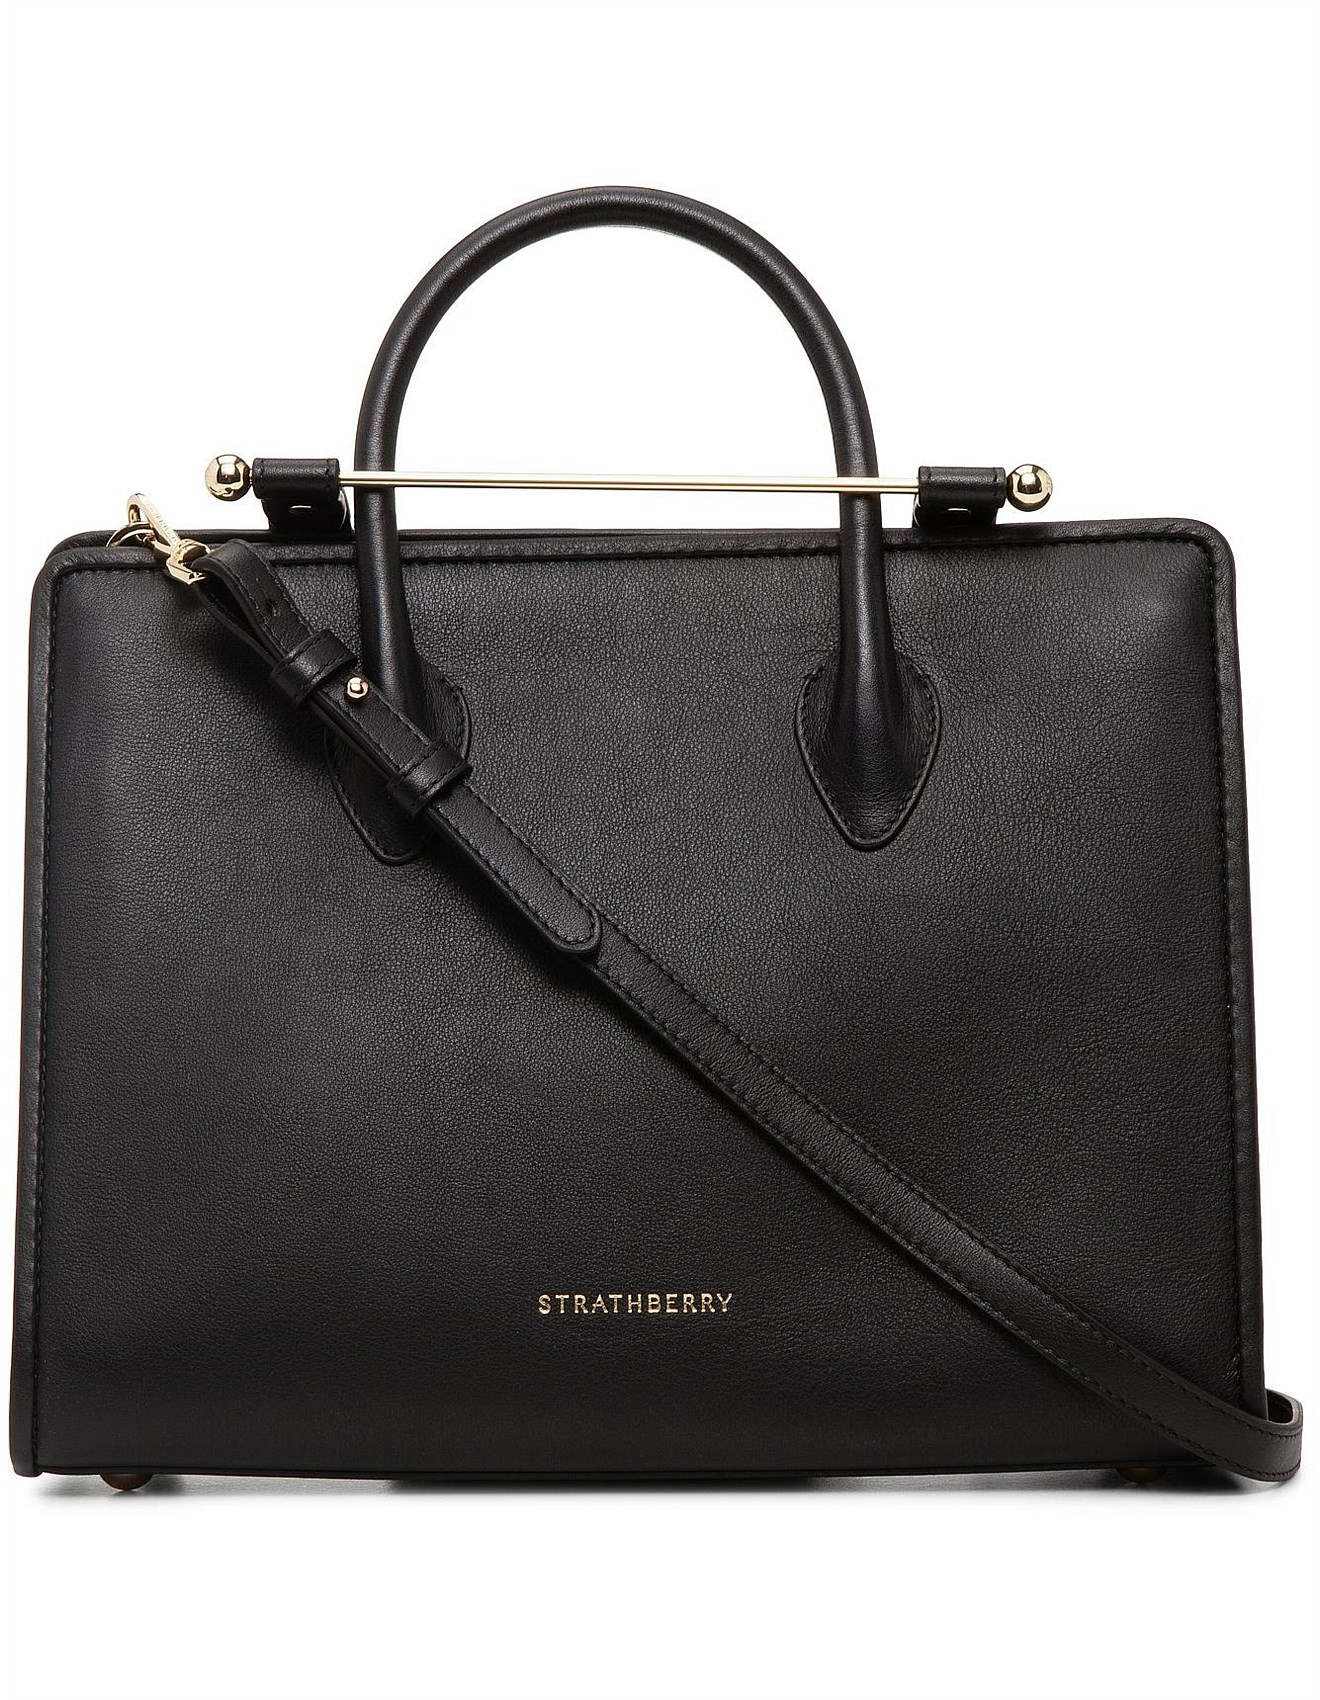 4ed507aa9331 The Strathberry Midi Tote Bag